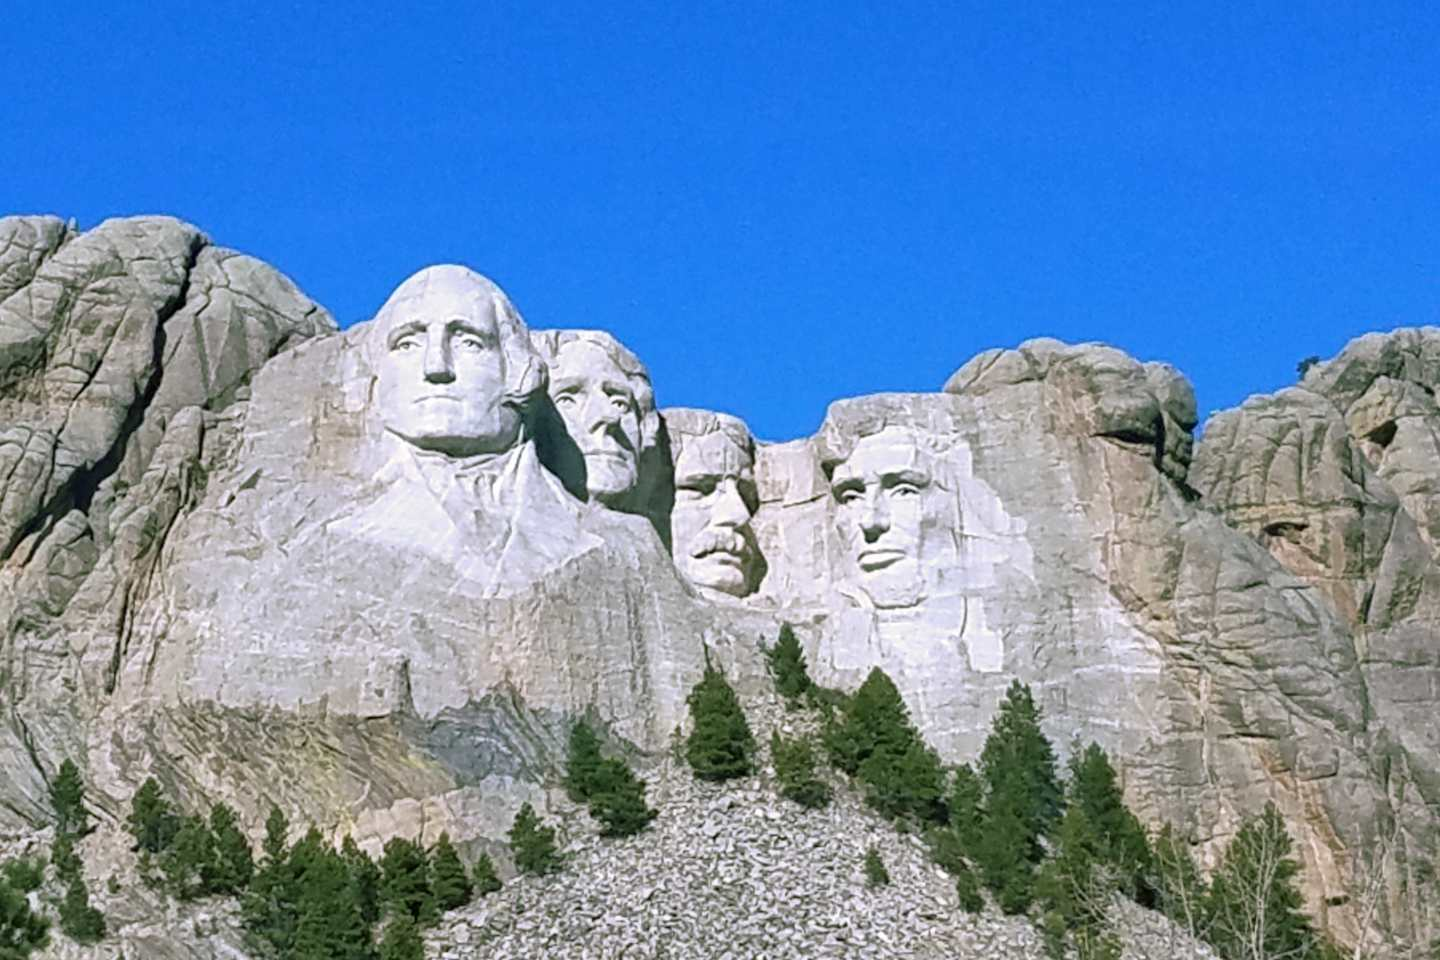 Tour of Mount Rushmore